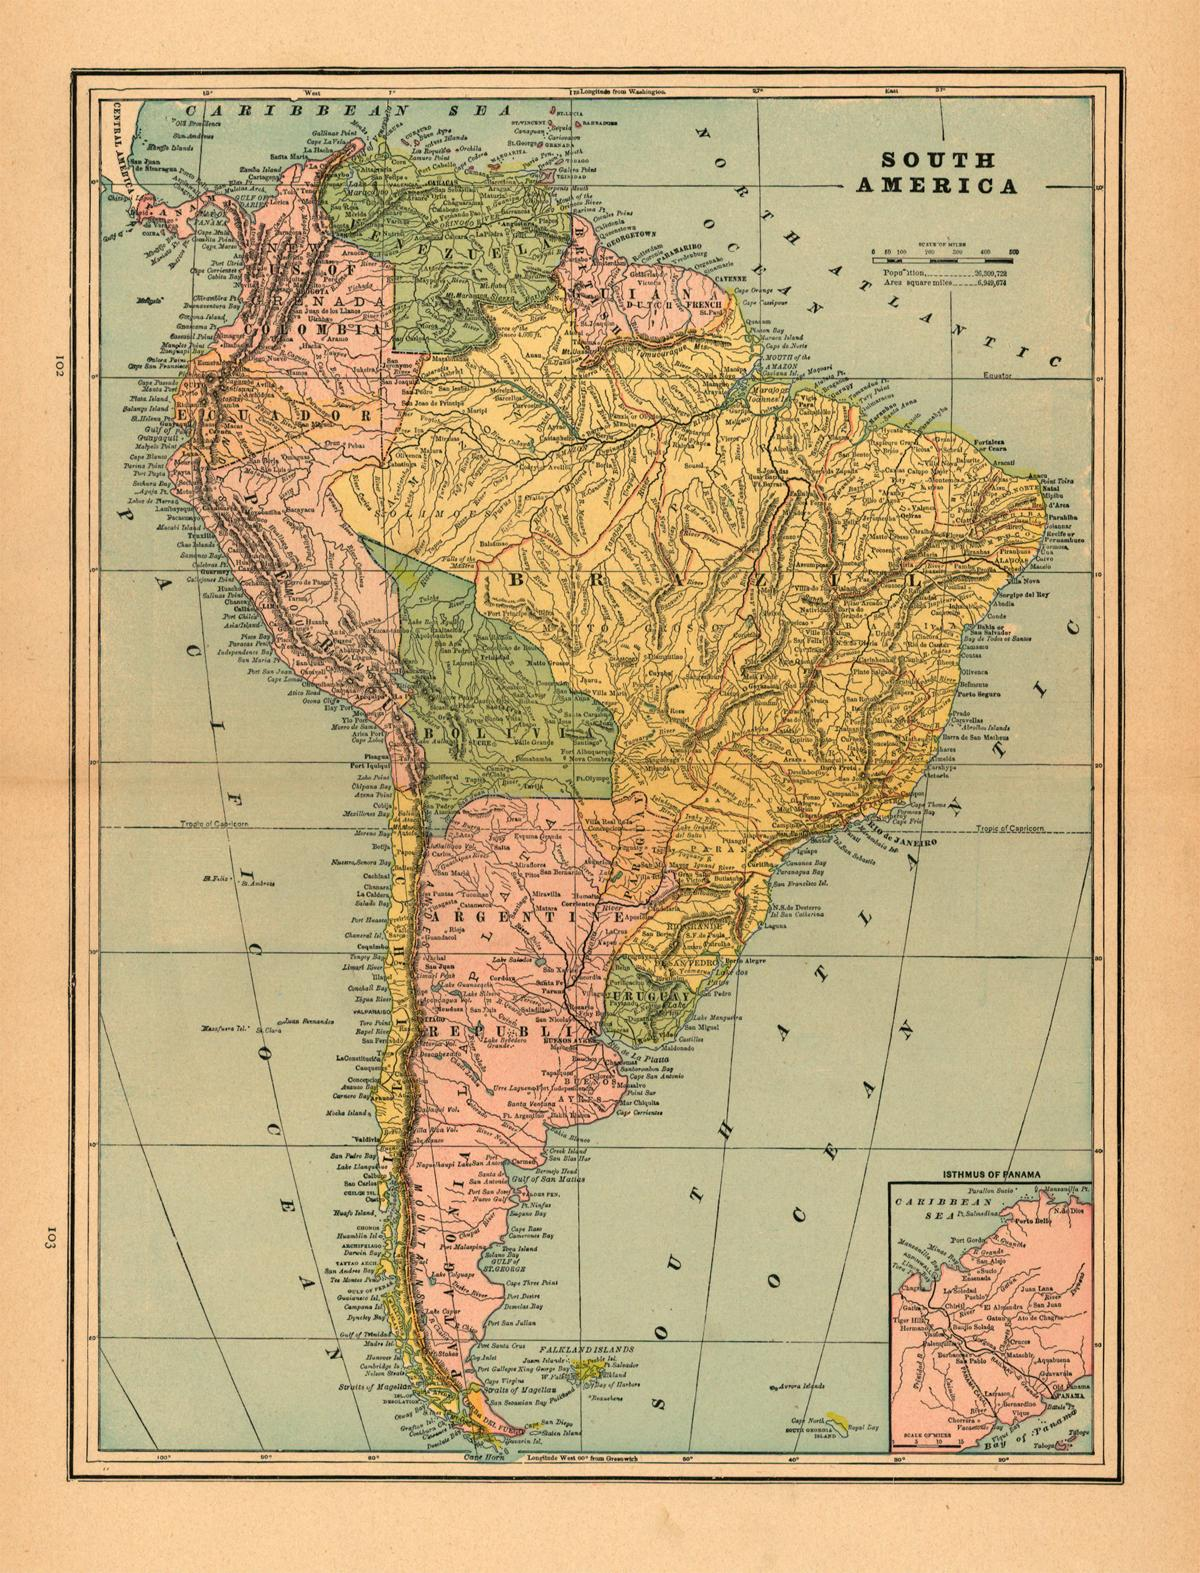 South America Old Maps Zoom Maps